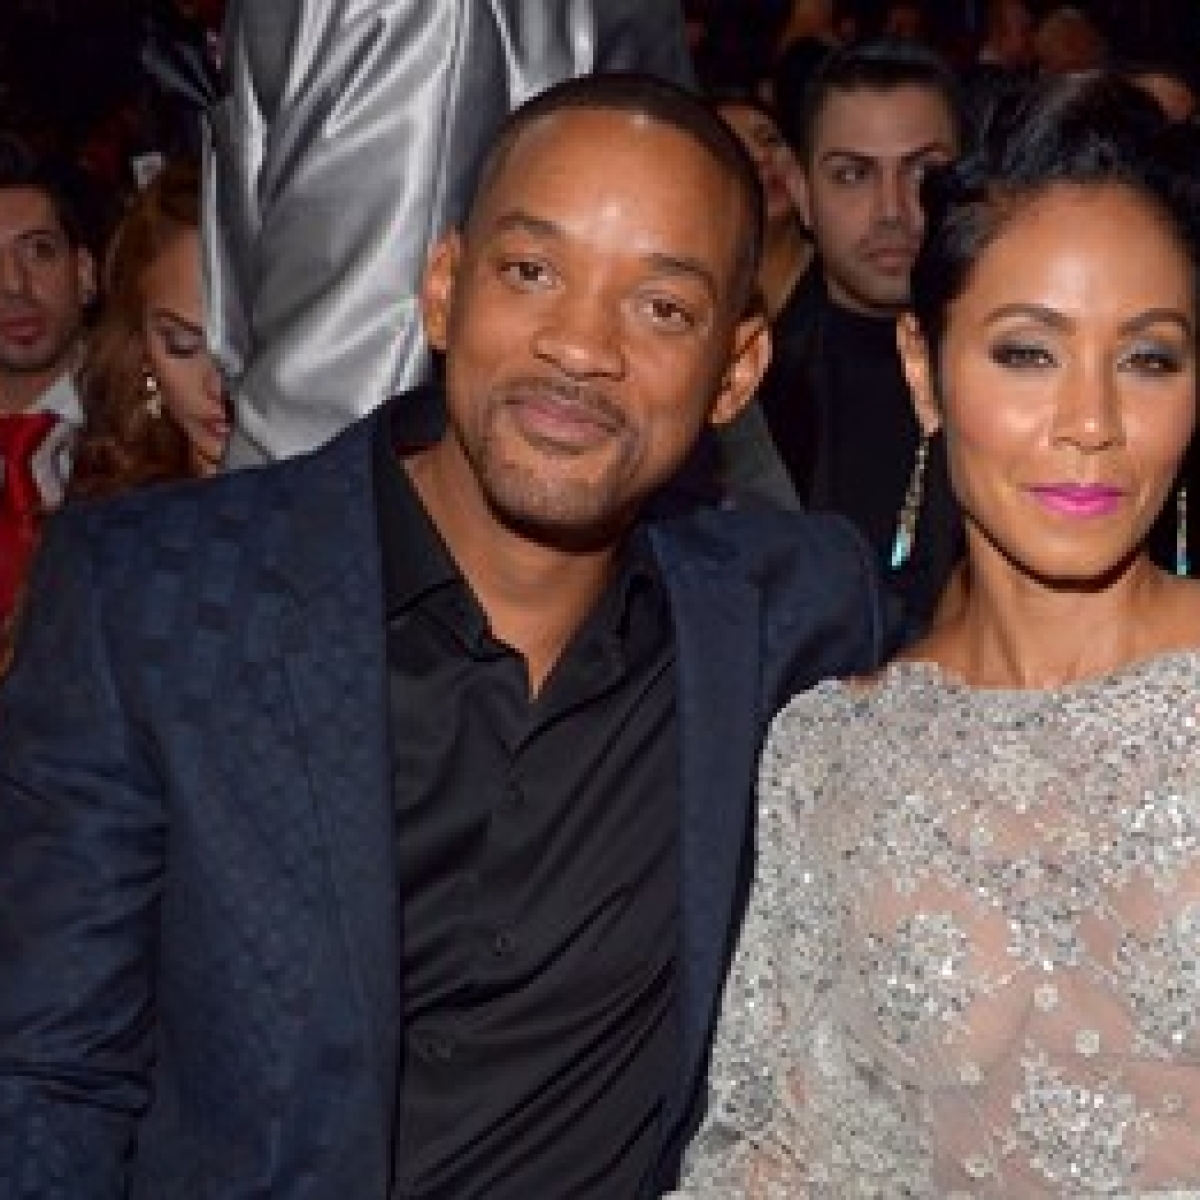 Jada Pinkett Smith admits to 'relationship' with August Alsina while separated from Will Smith